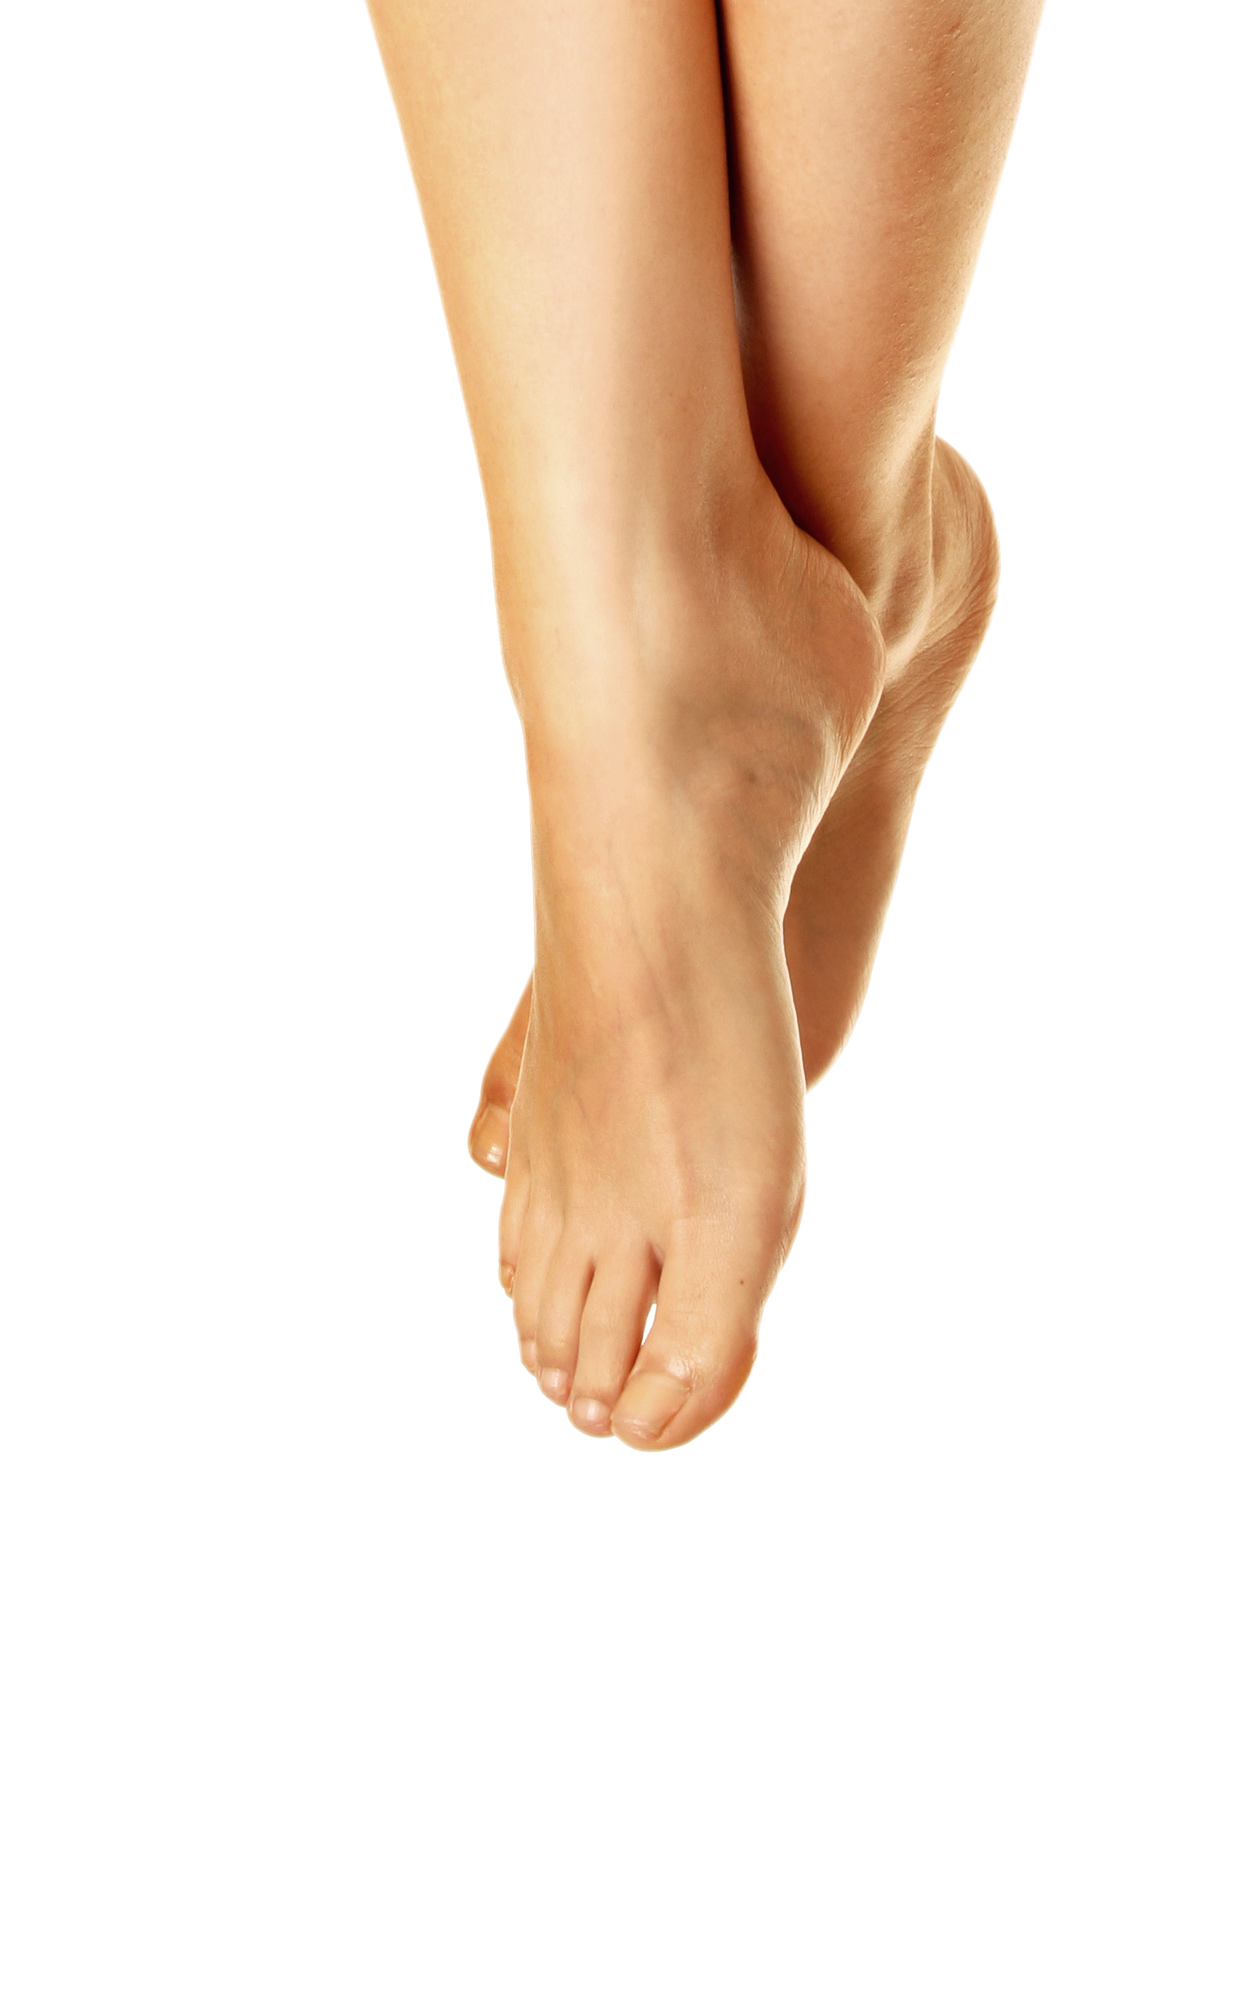 Legs ankle joint